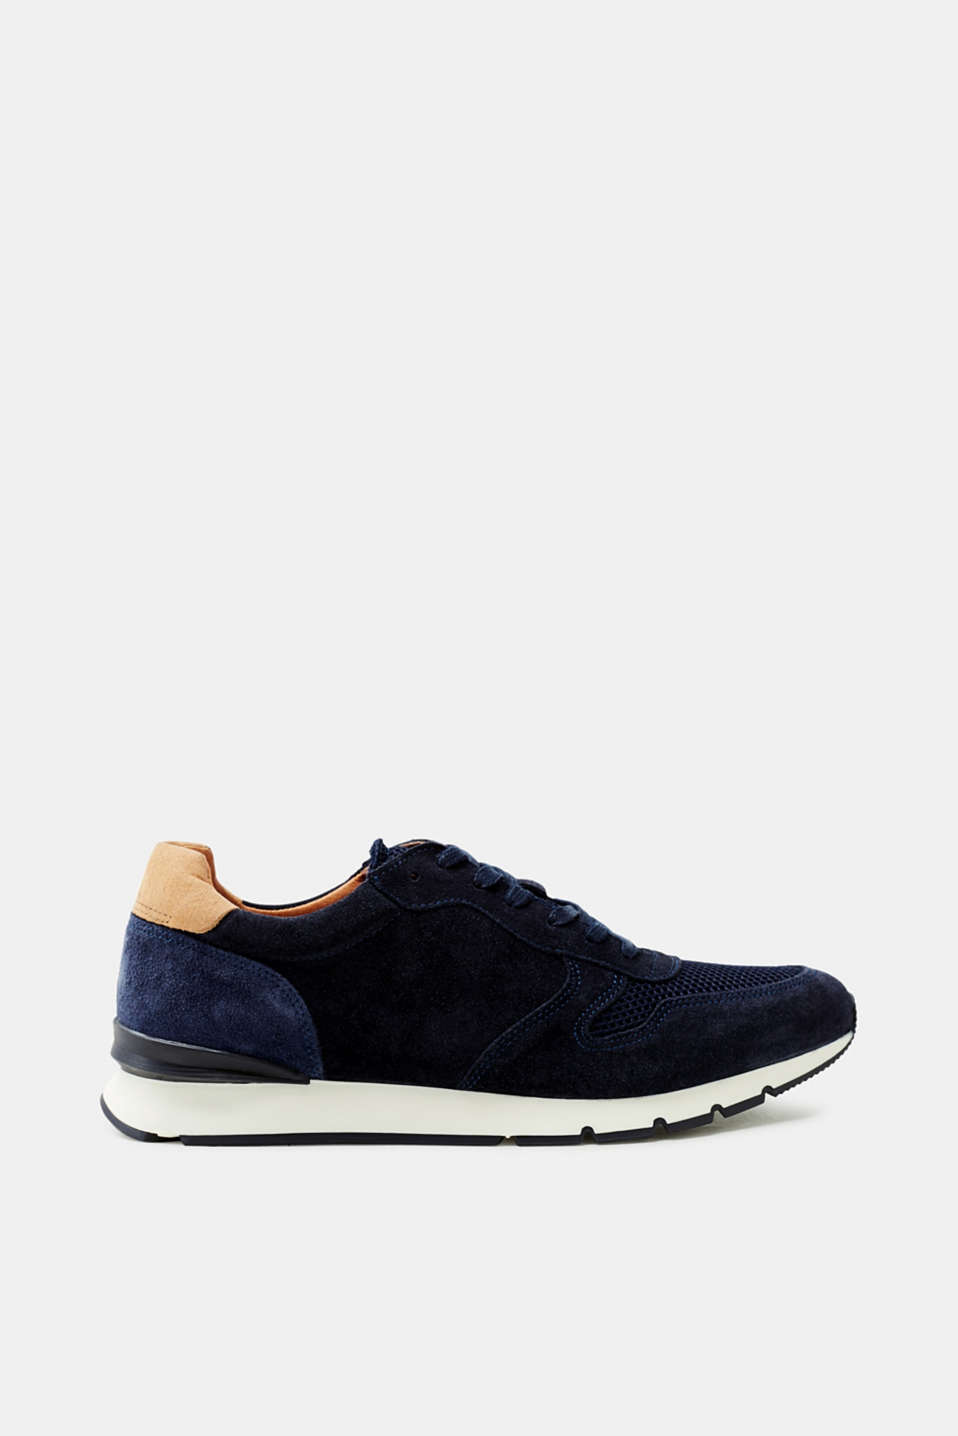 The combination of sporty mesh and genuine suede makes these trainers extremely exciting.